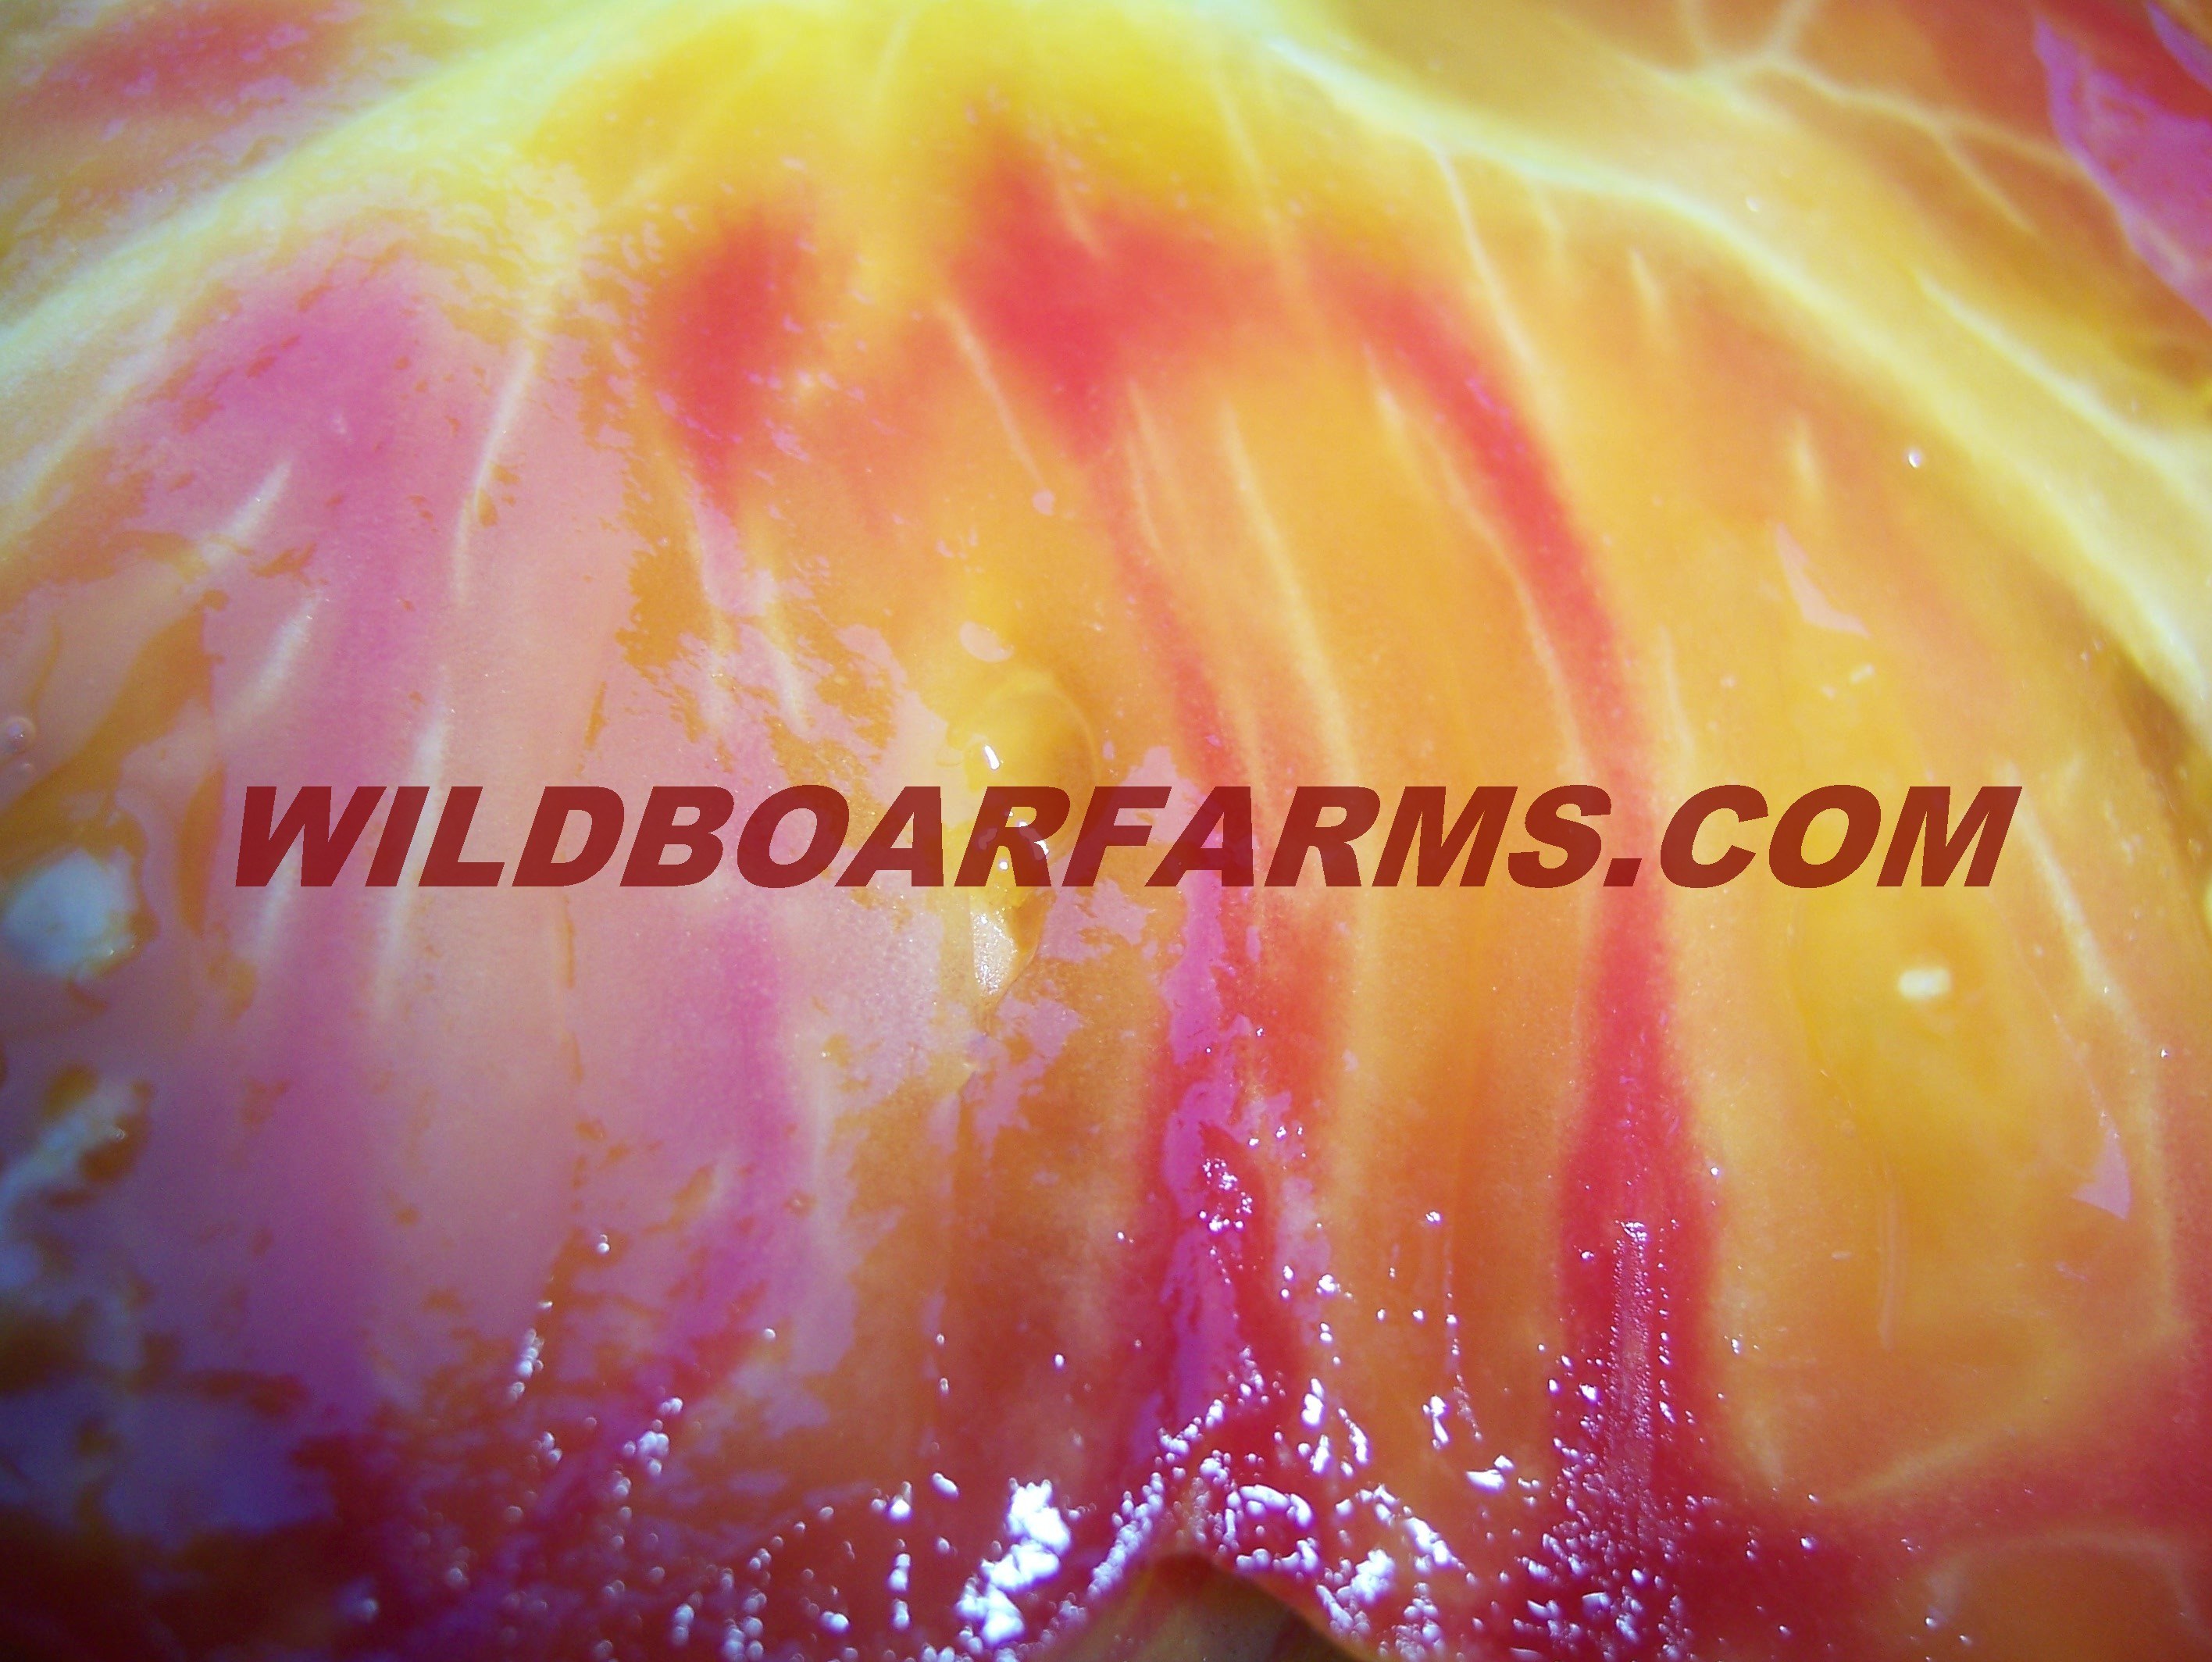 Wild Boar Farms Tomatoes 41